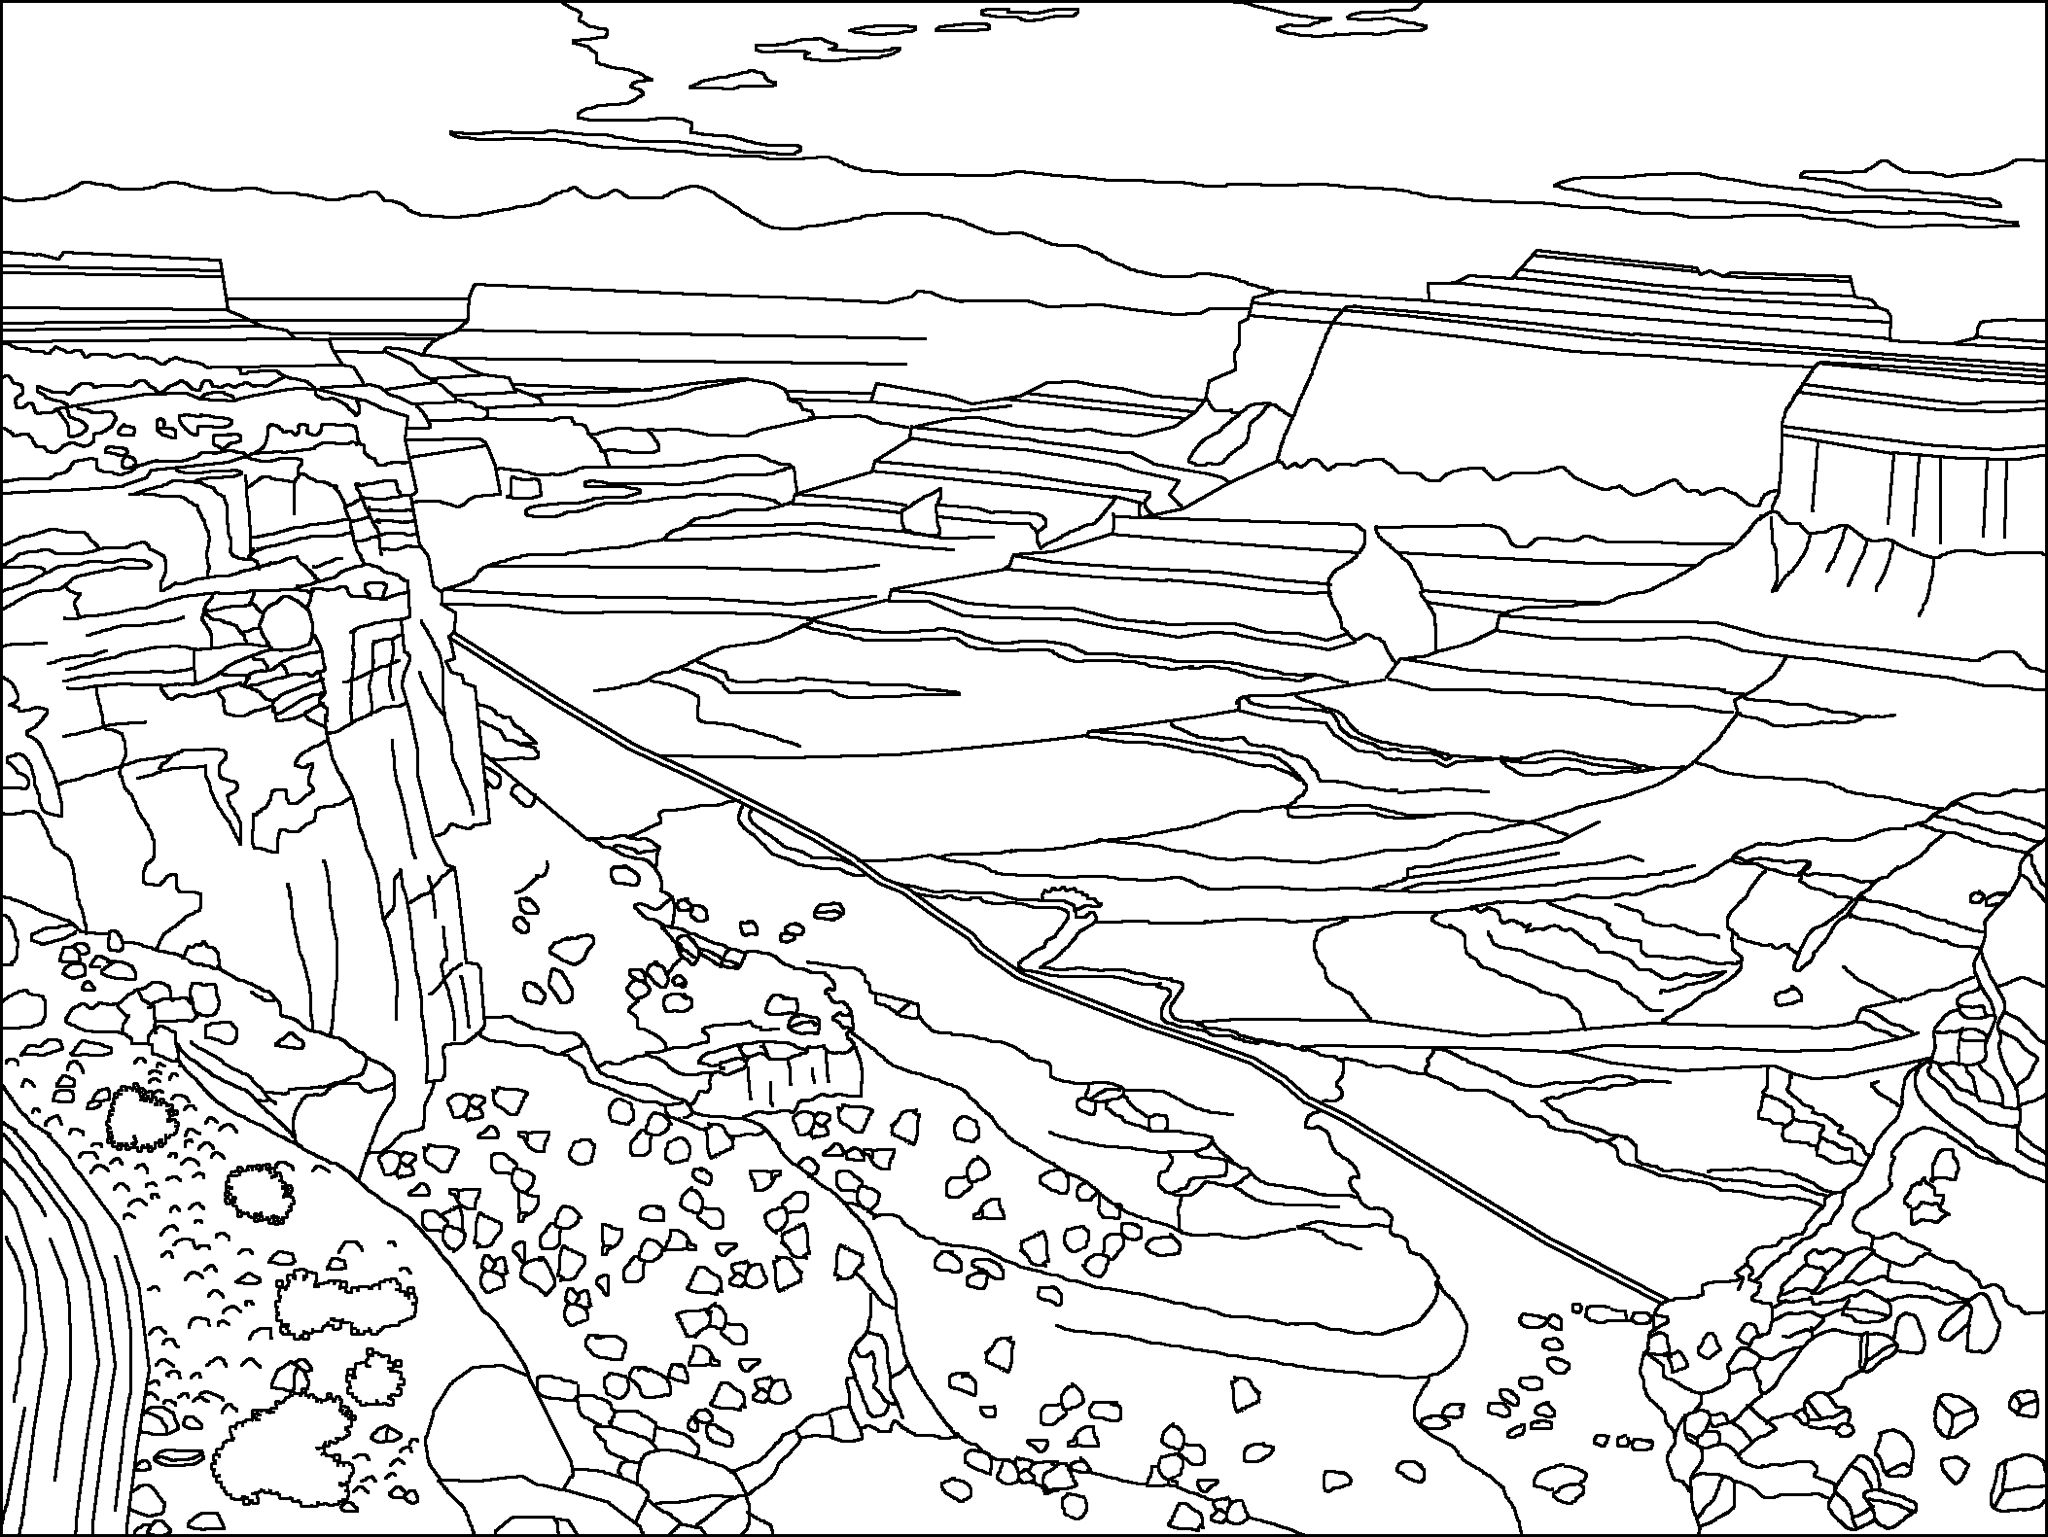 Nevada | Coloring Pages | Coloring Pages, Free Coloring